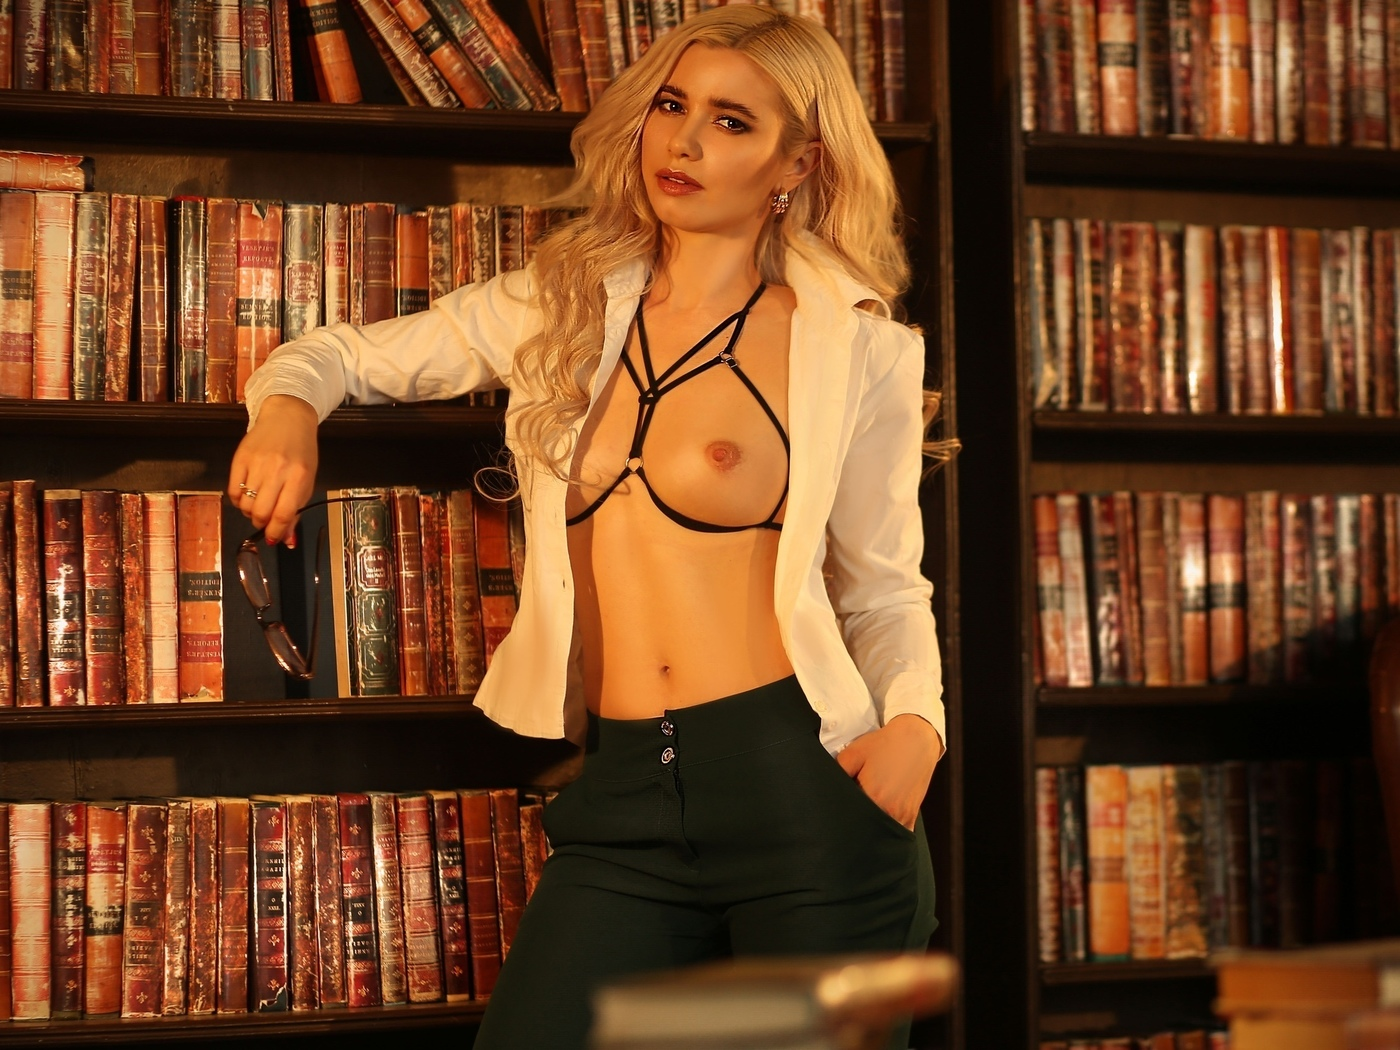 sexy girl, nice boobs, books